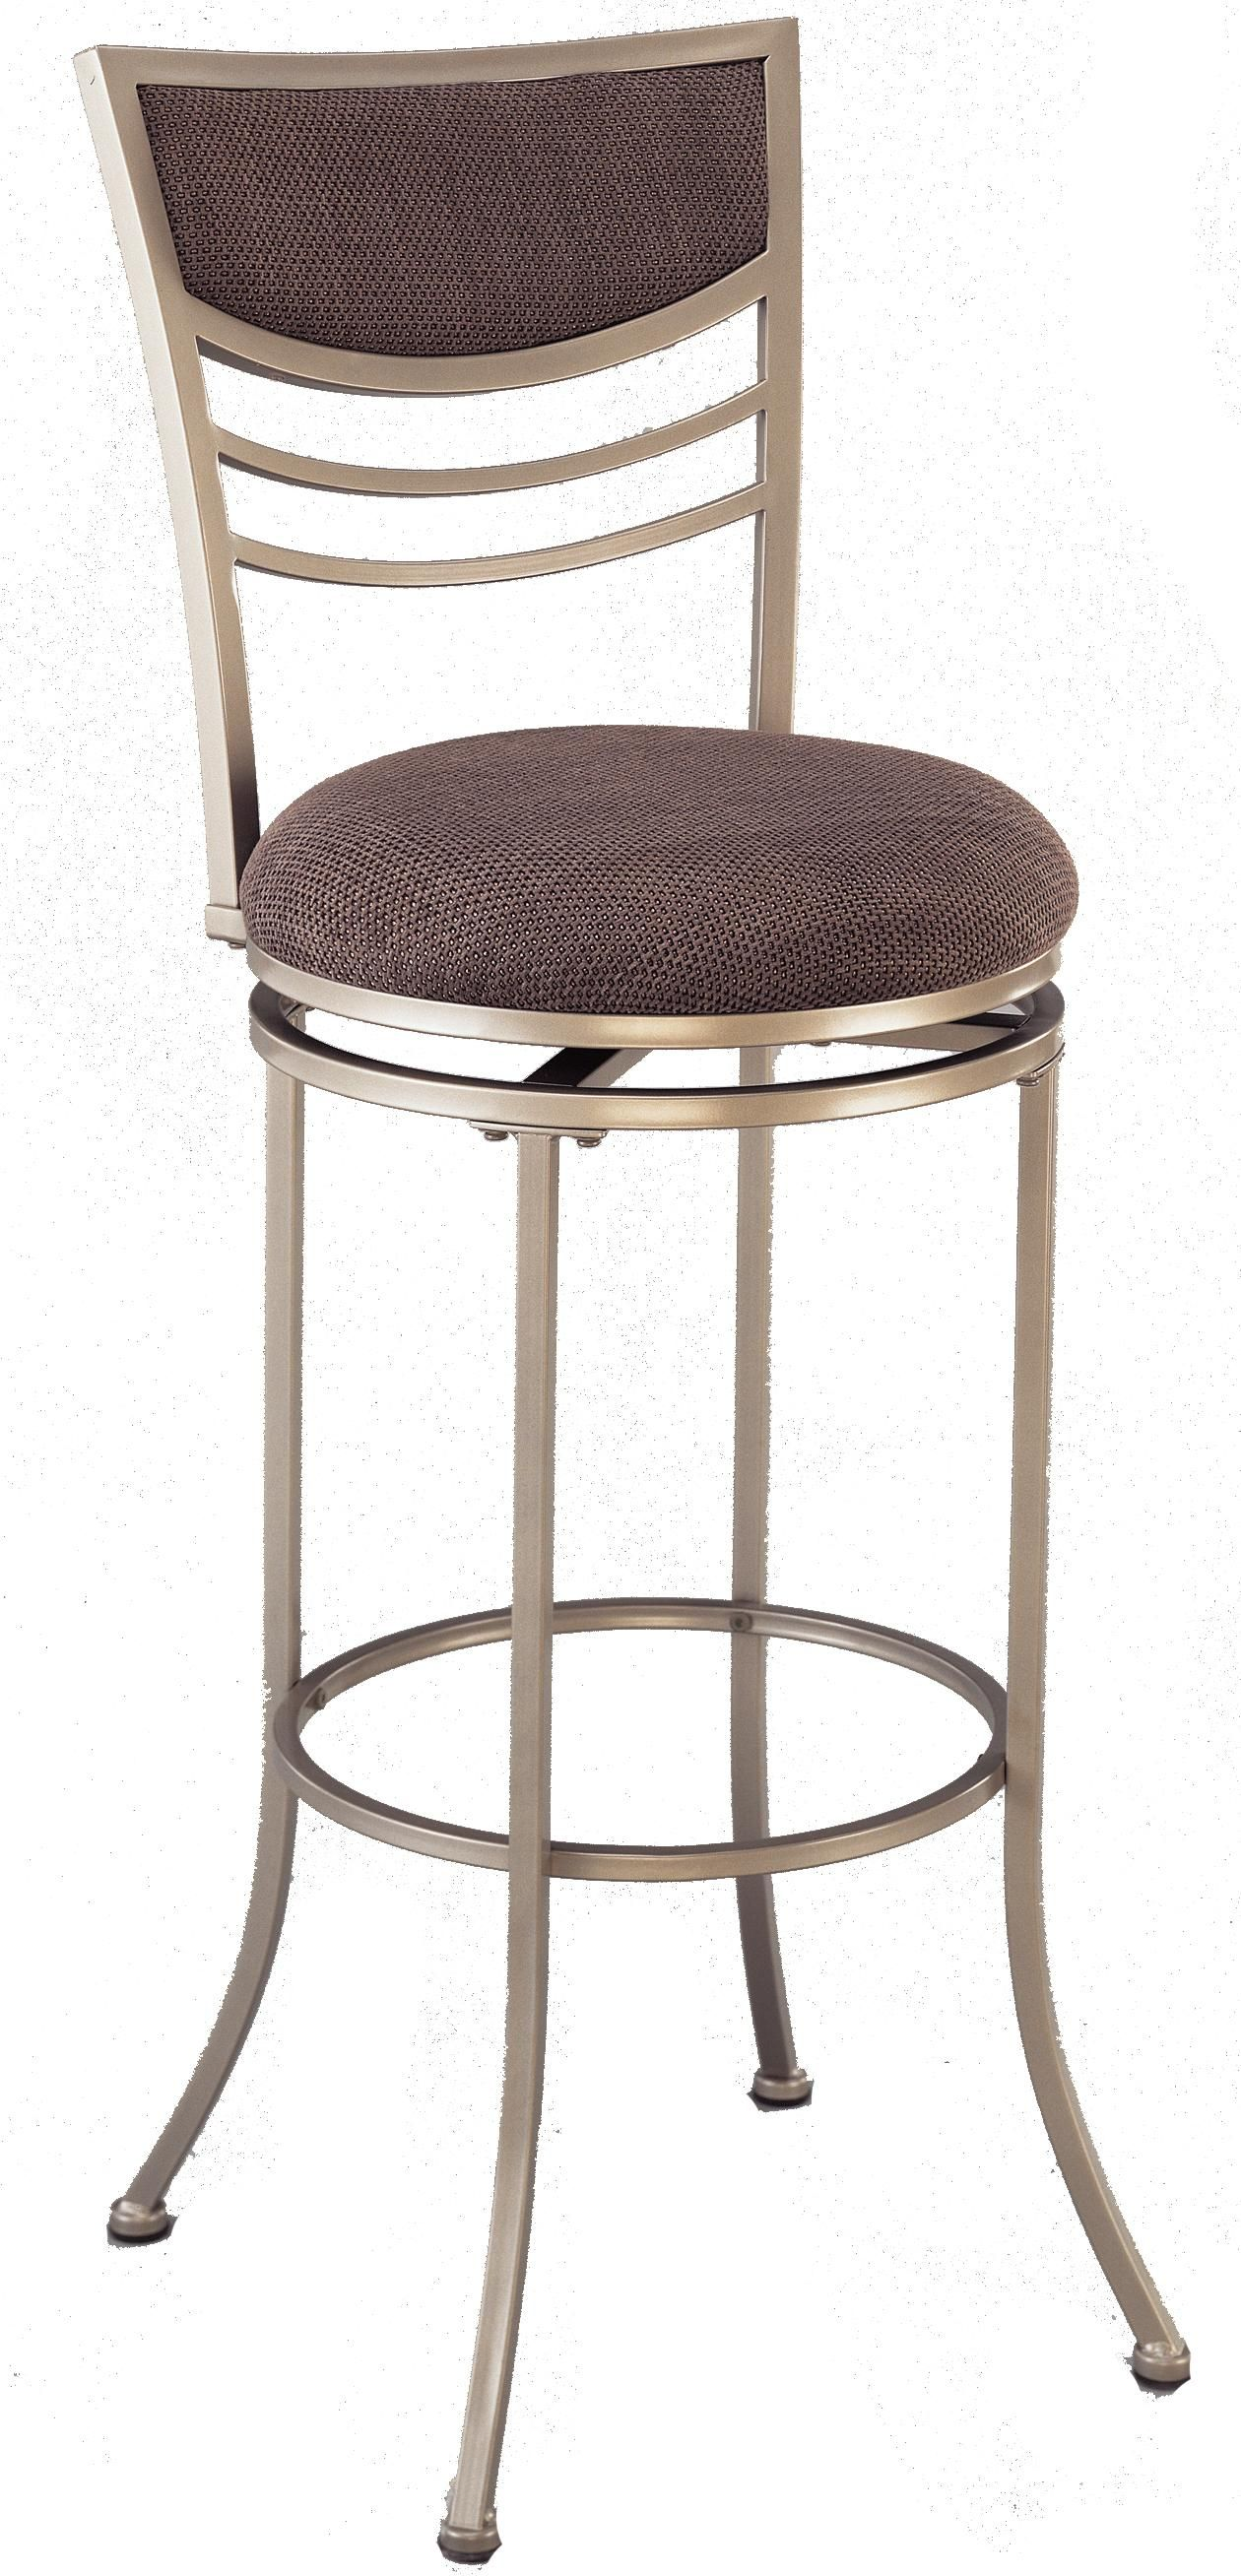 Best Of Extra Tall Patio Bar Stools